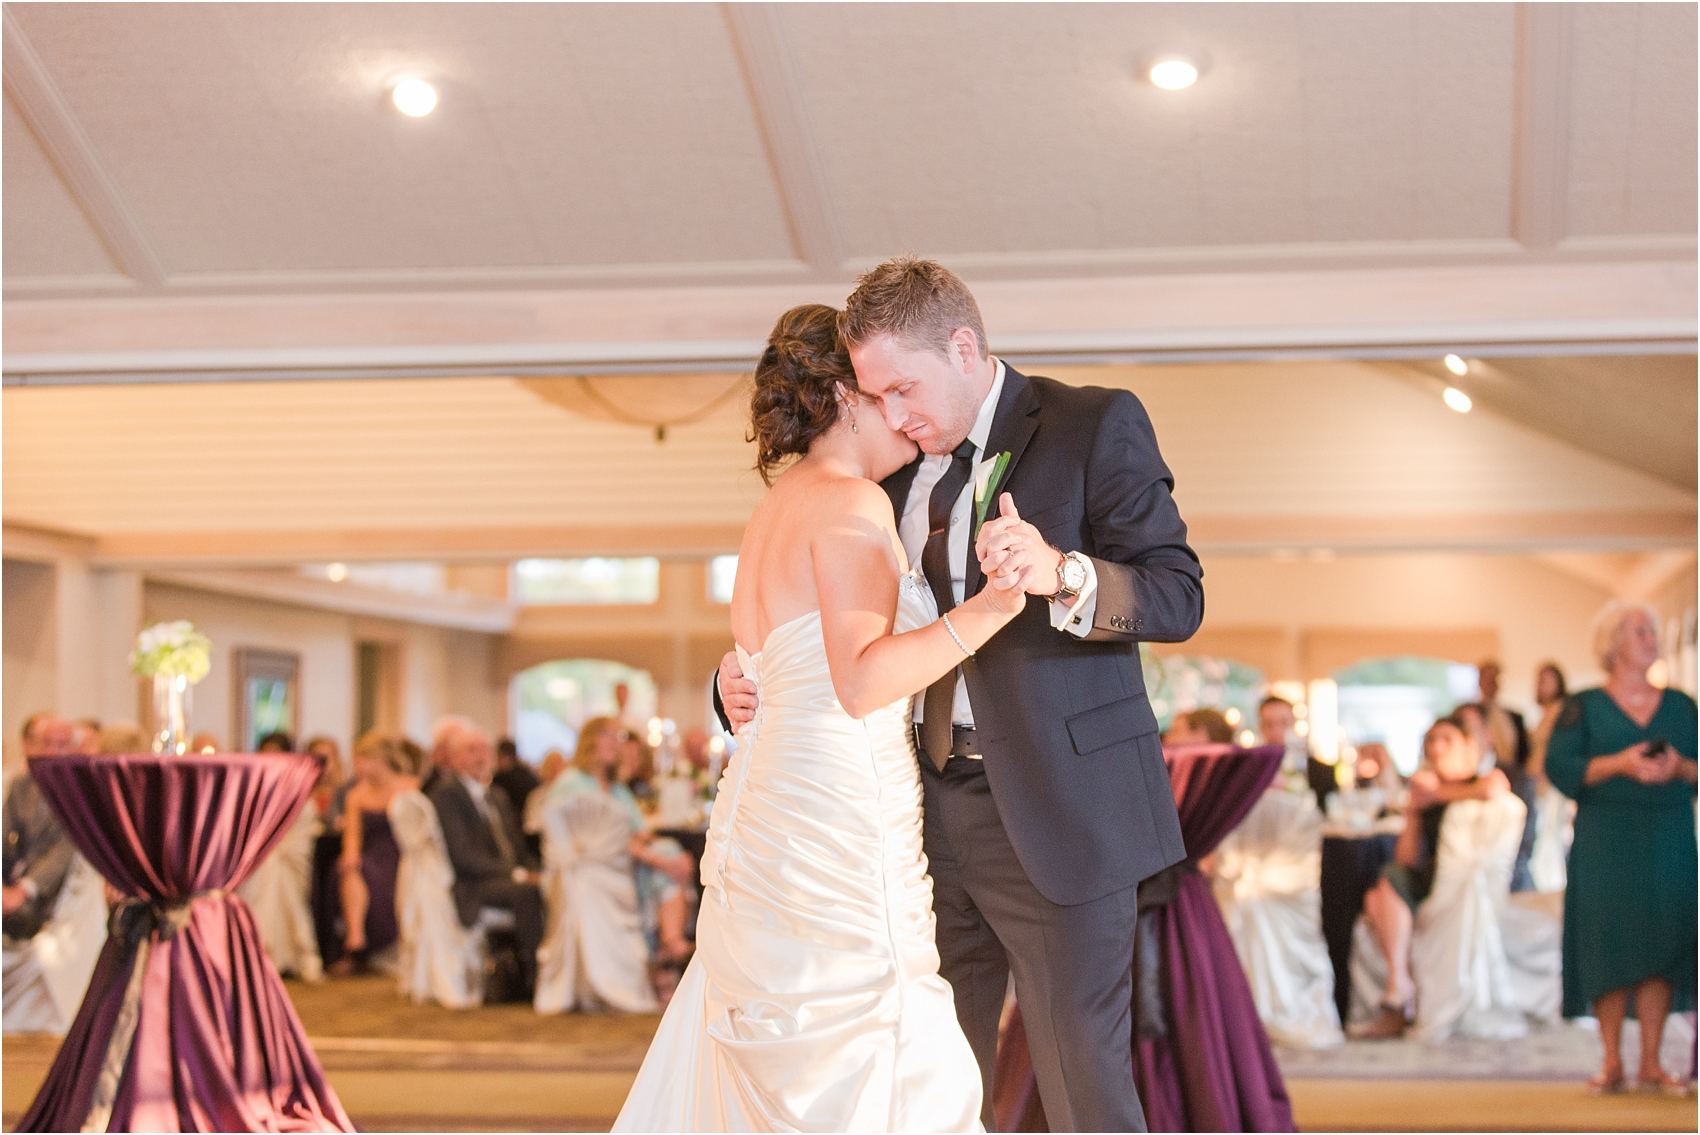 classic-wedding-photos-at-great-oaks-country-club-in-rochester-hills-mi-by-courtney-carolyn-photography_0103.jpg